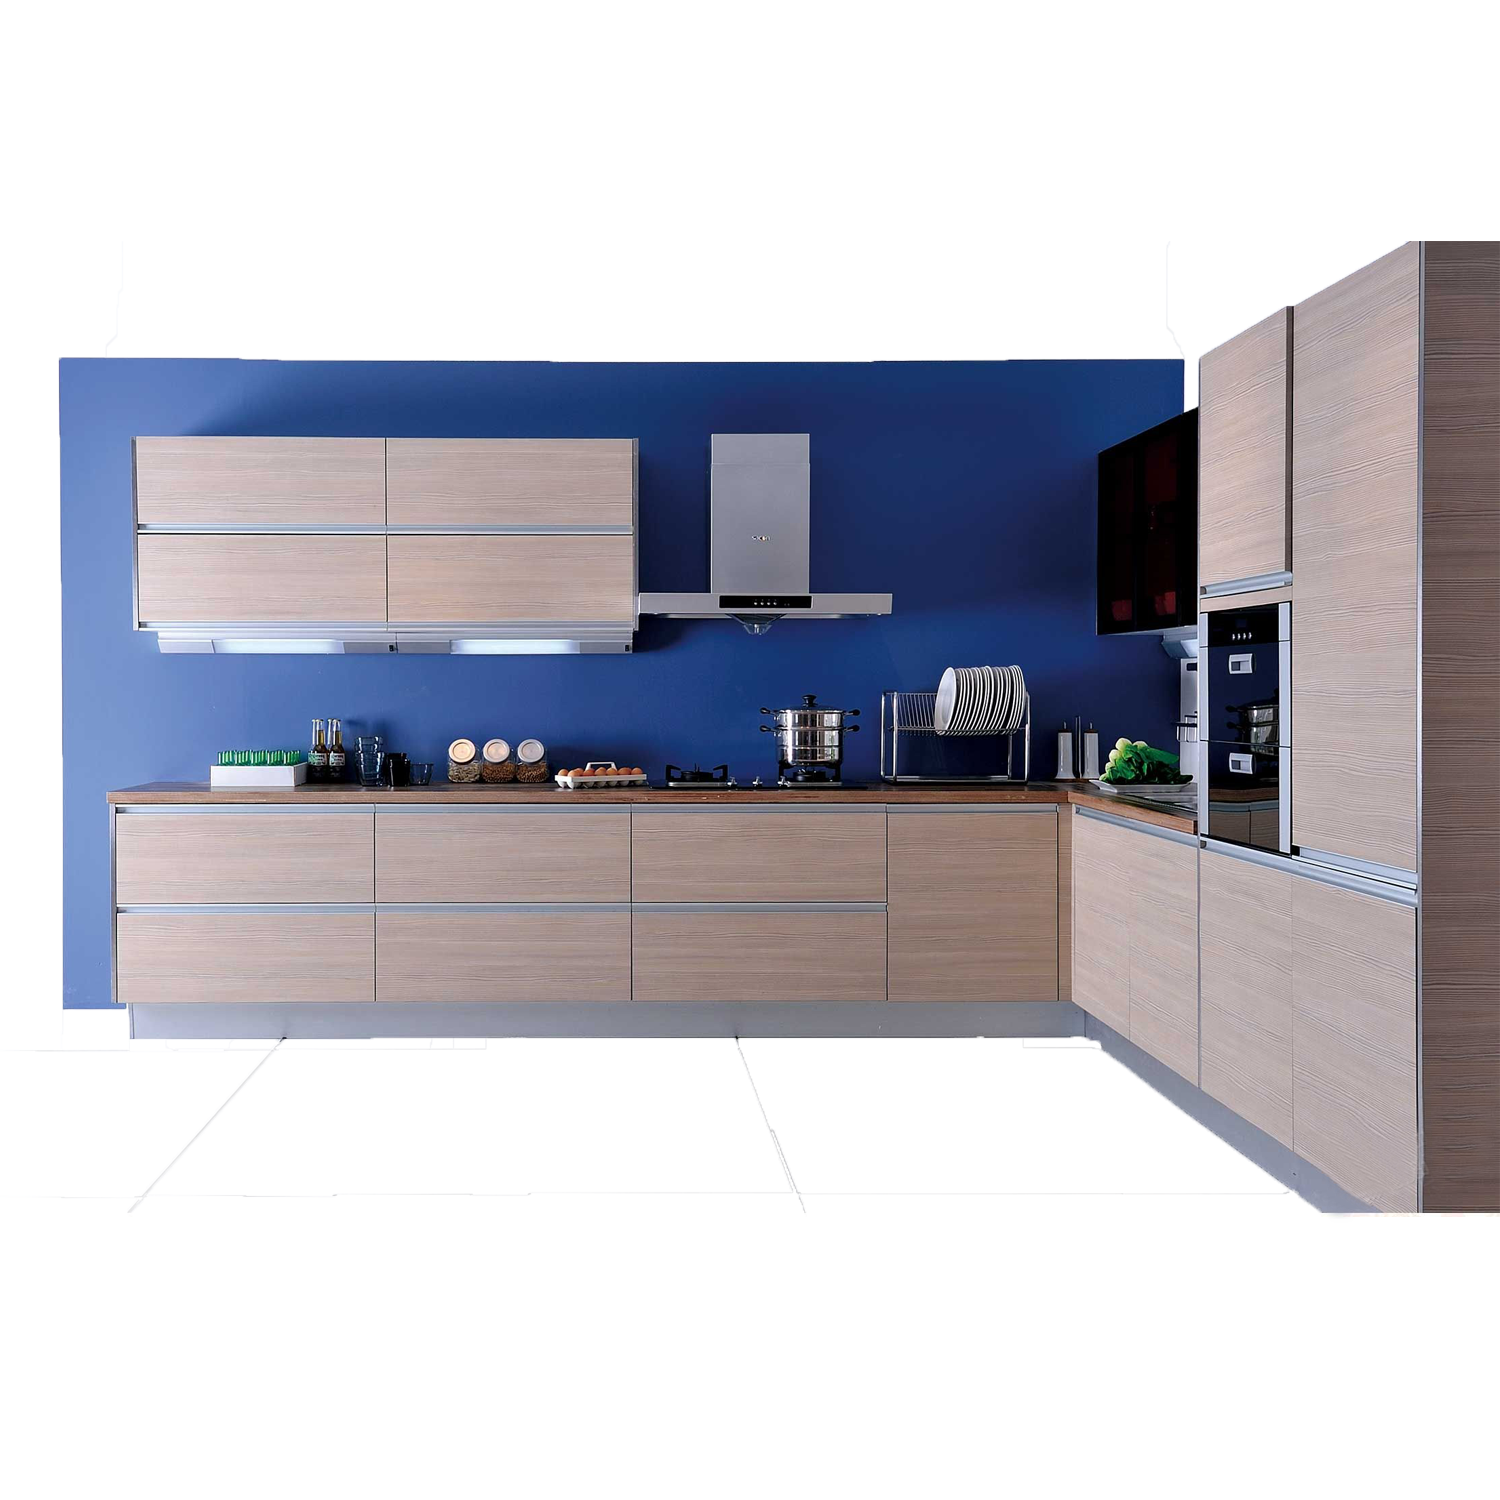 Tile vector kitchen. Cabinet cupboard furniture cabinetry